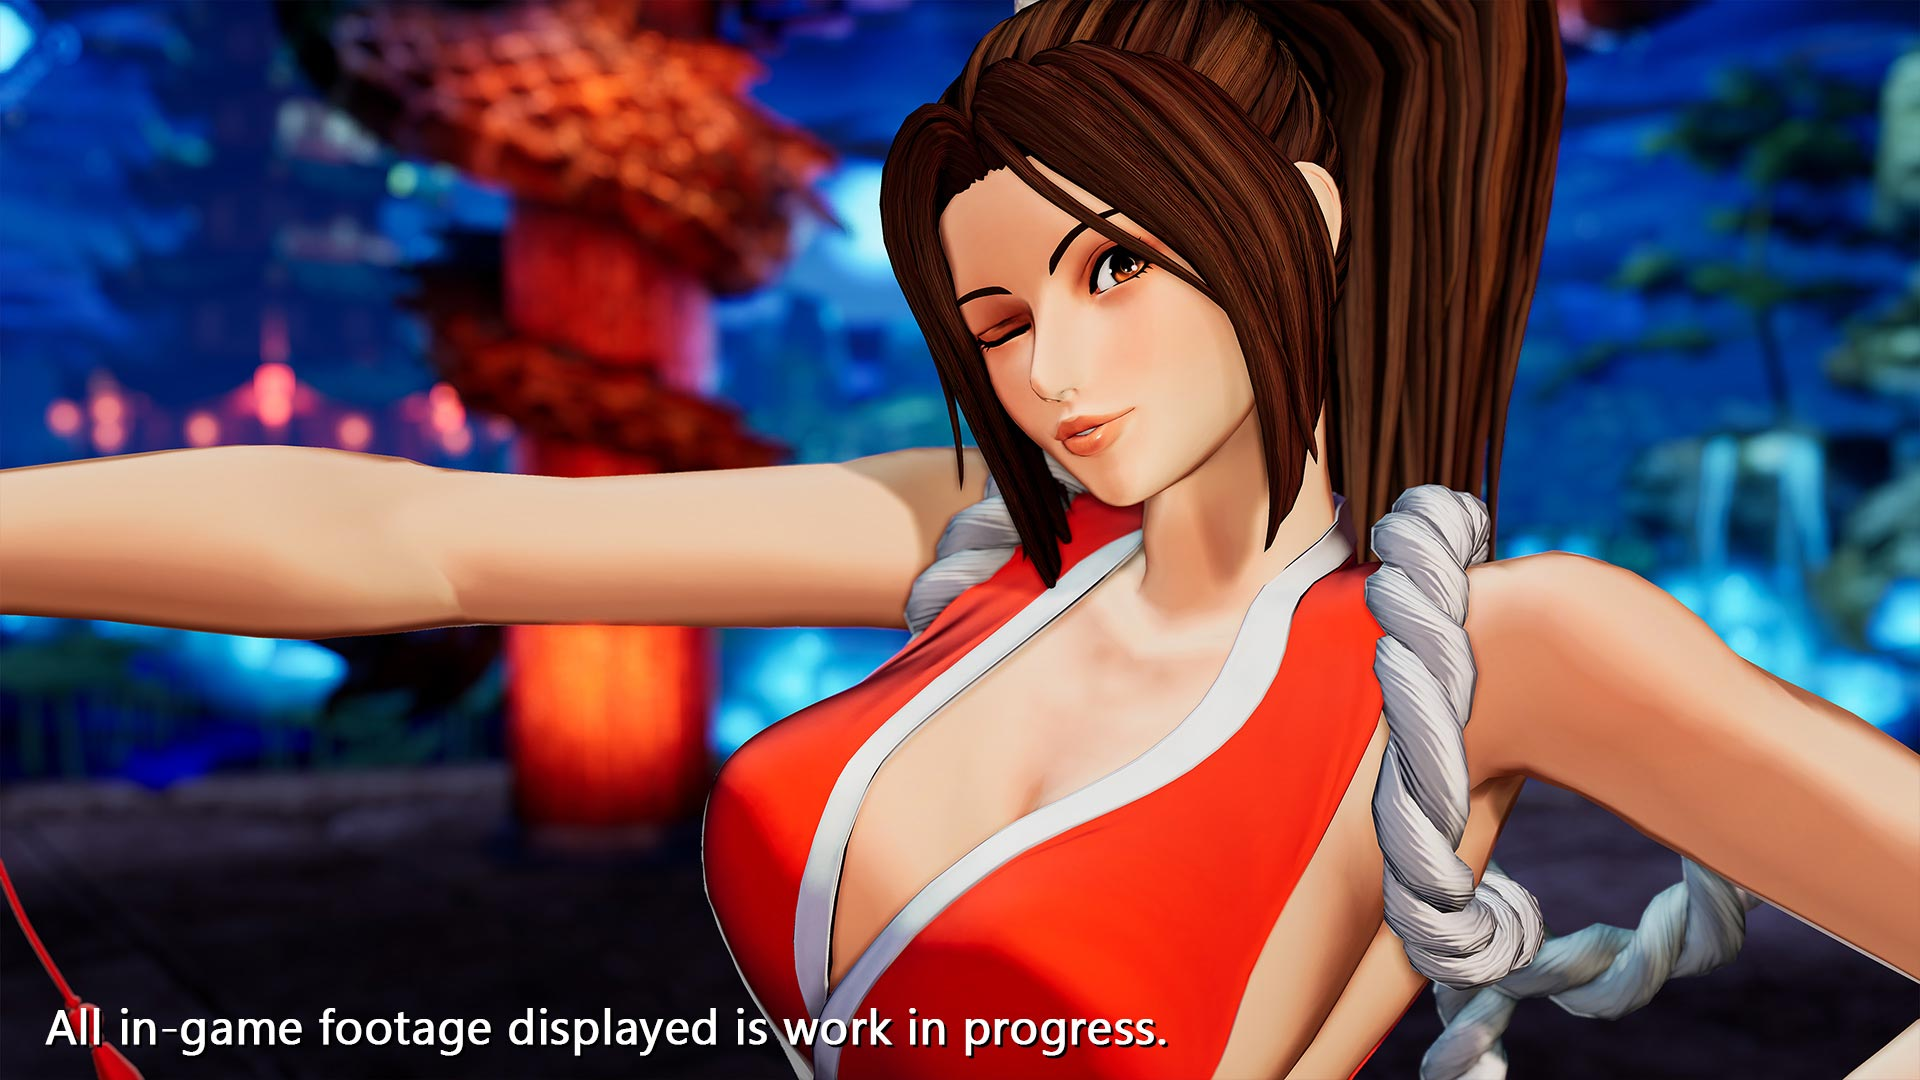 Mai gameplay trailer 4 out of 9 image gallery